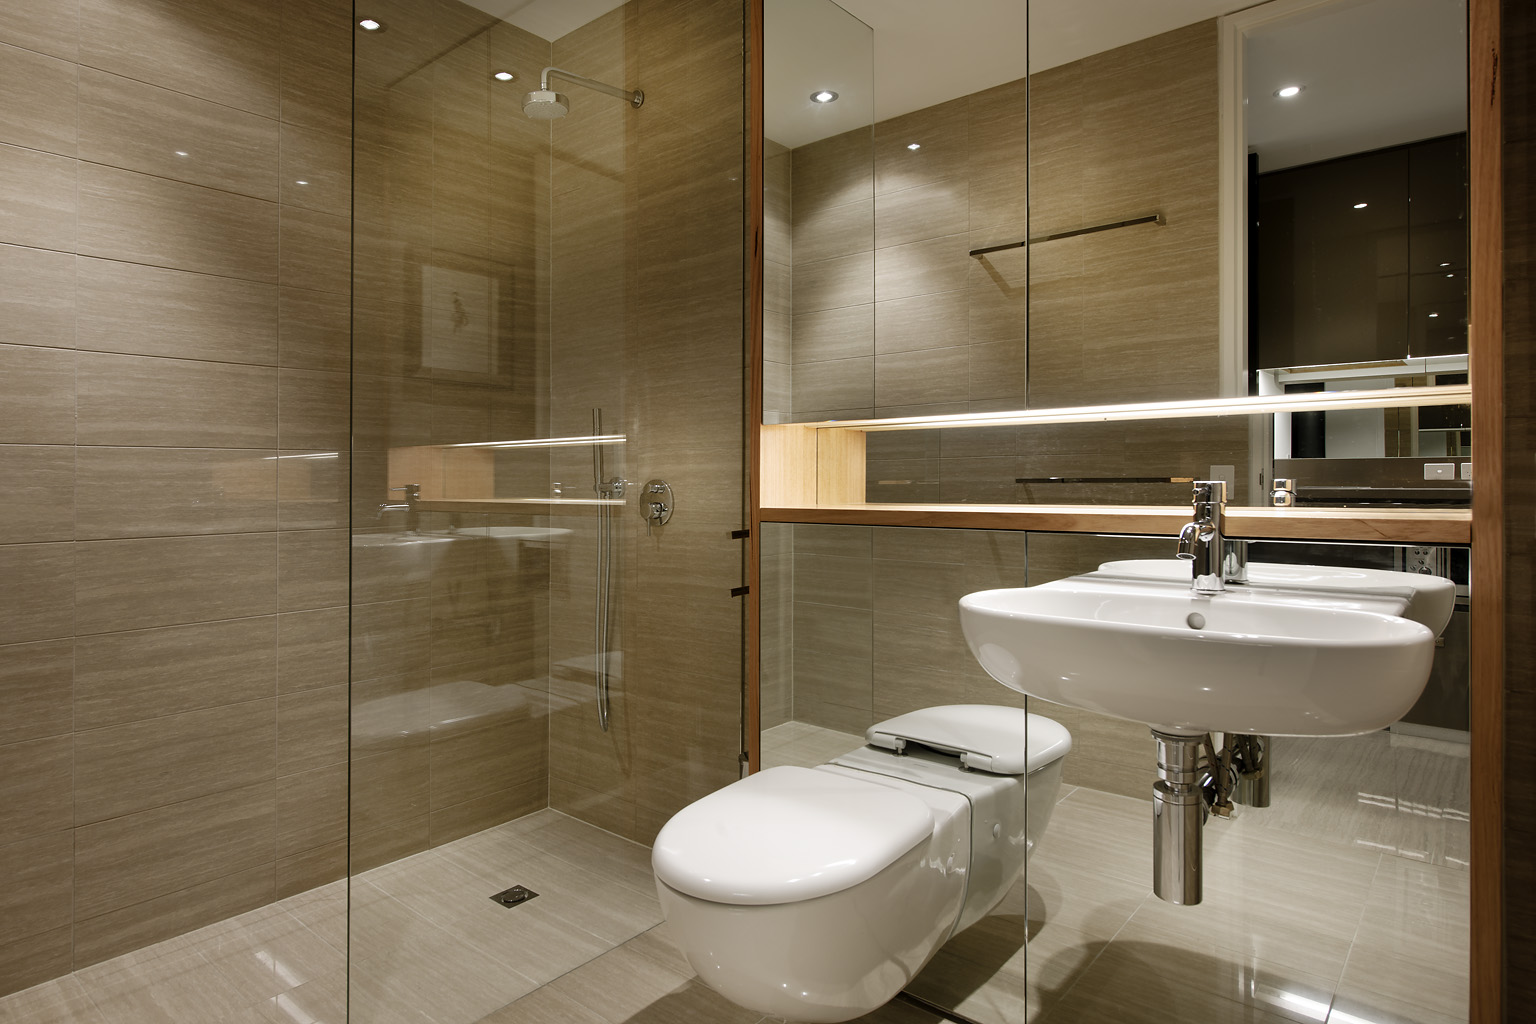 Bathroom at  Fraser Suites Perth - Citybase Apartments